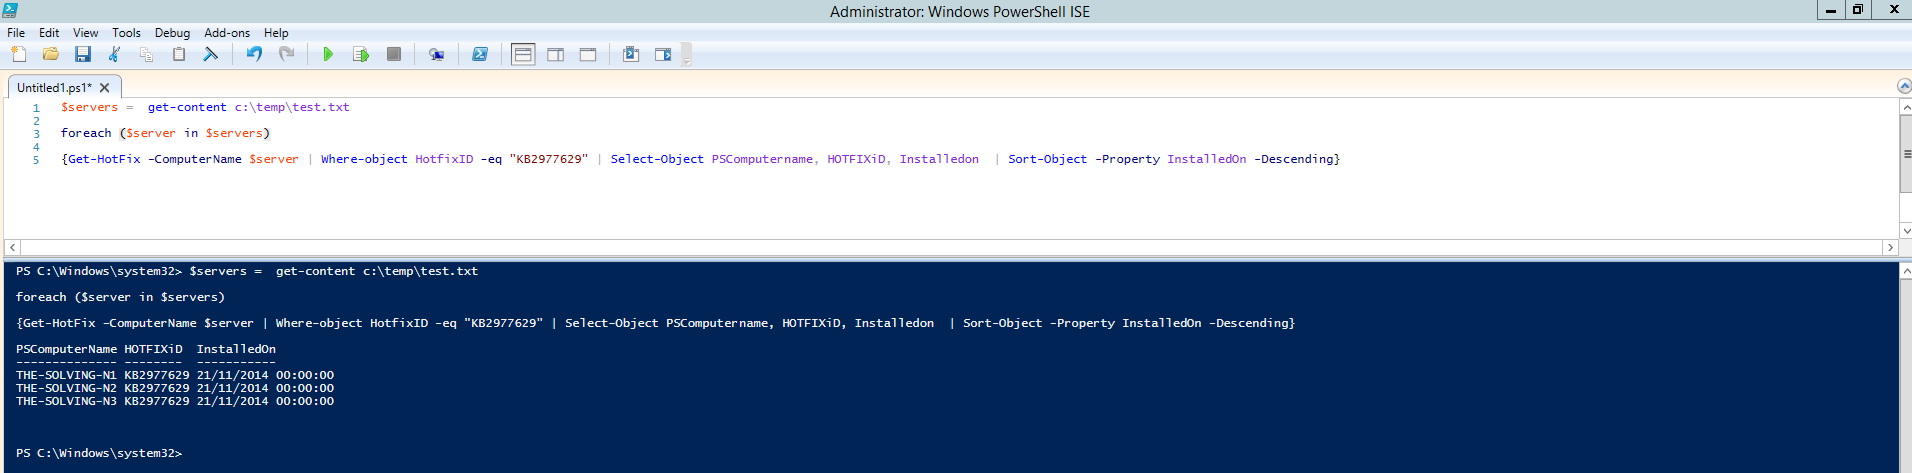 http://thesolving.com/wp-content/uploads/2018/04/2018-04-27-13_00_49-Administrator_-Windows-PowerShell-ISE.png